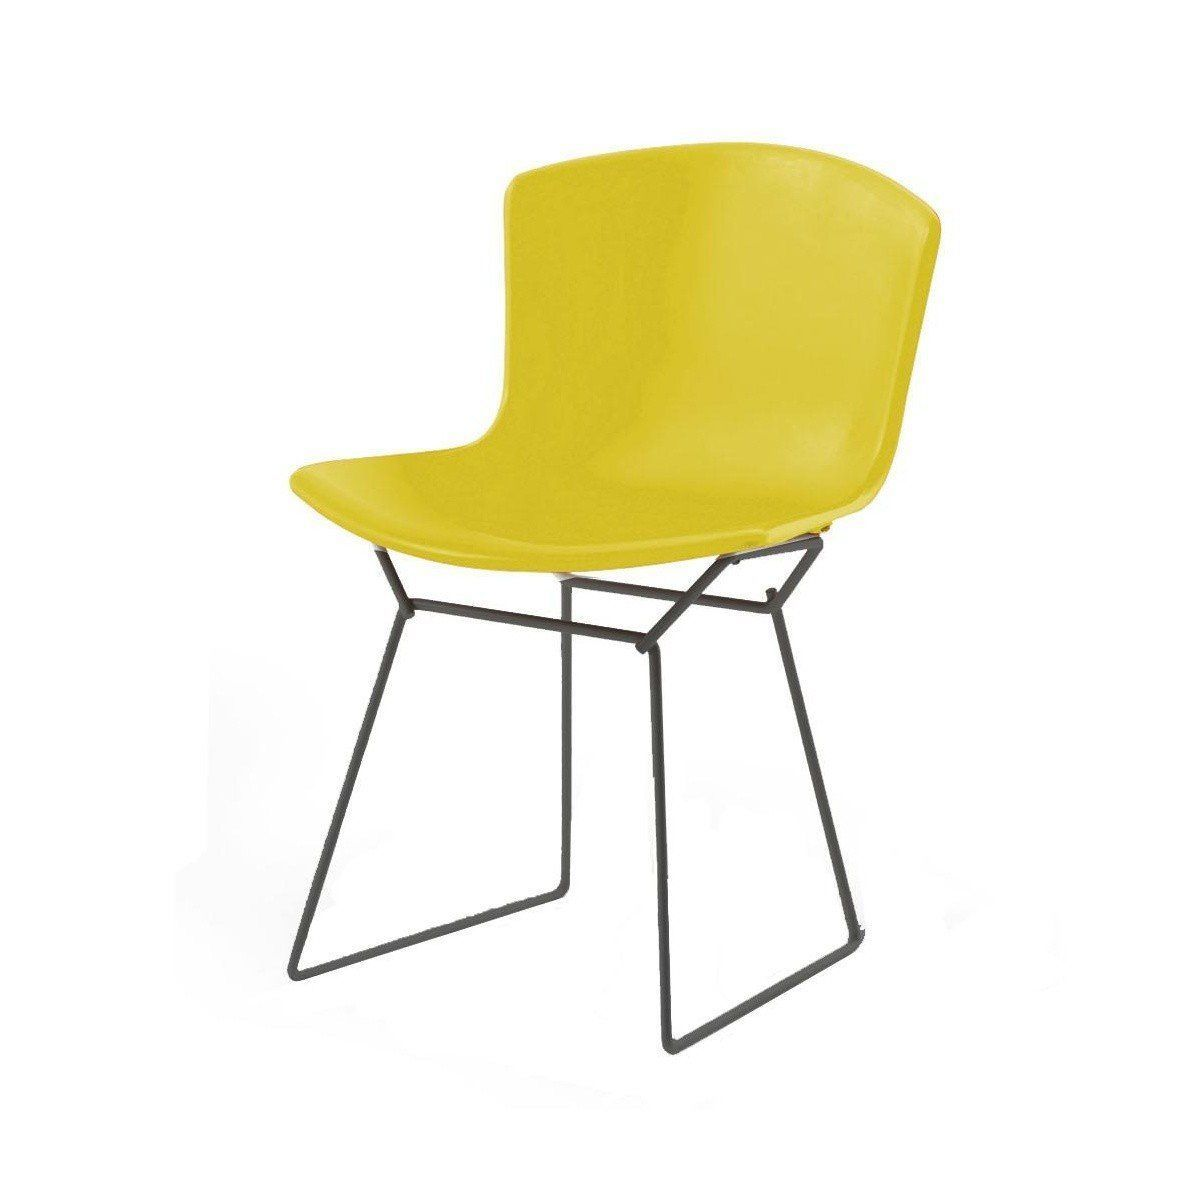 Knoll International  Bertoia Plastic Side Chair Frame Black Yellowpolypropyleneframe  Black Yellow Side Chair56